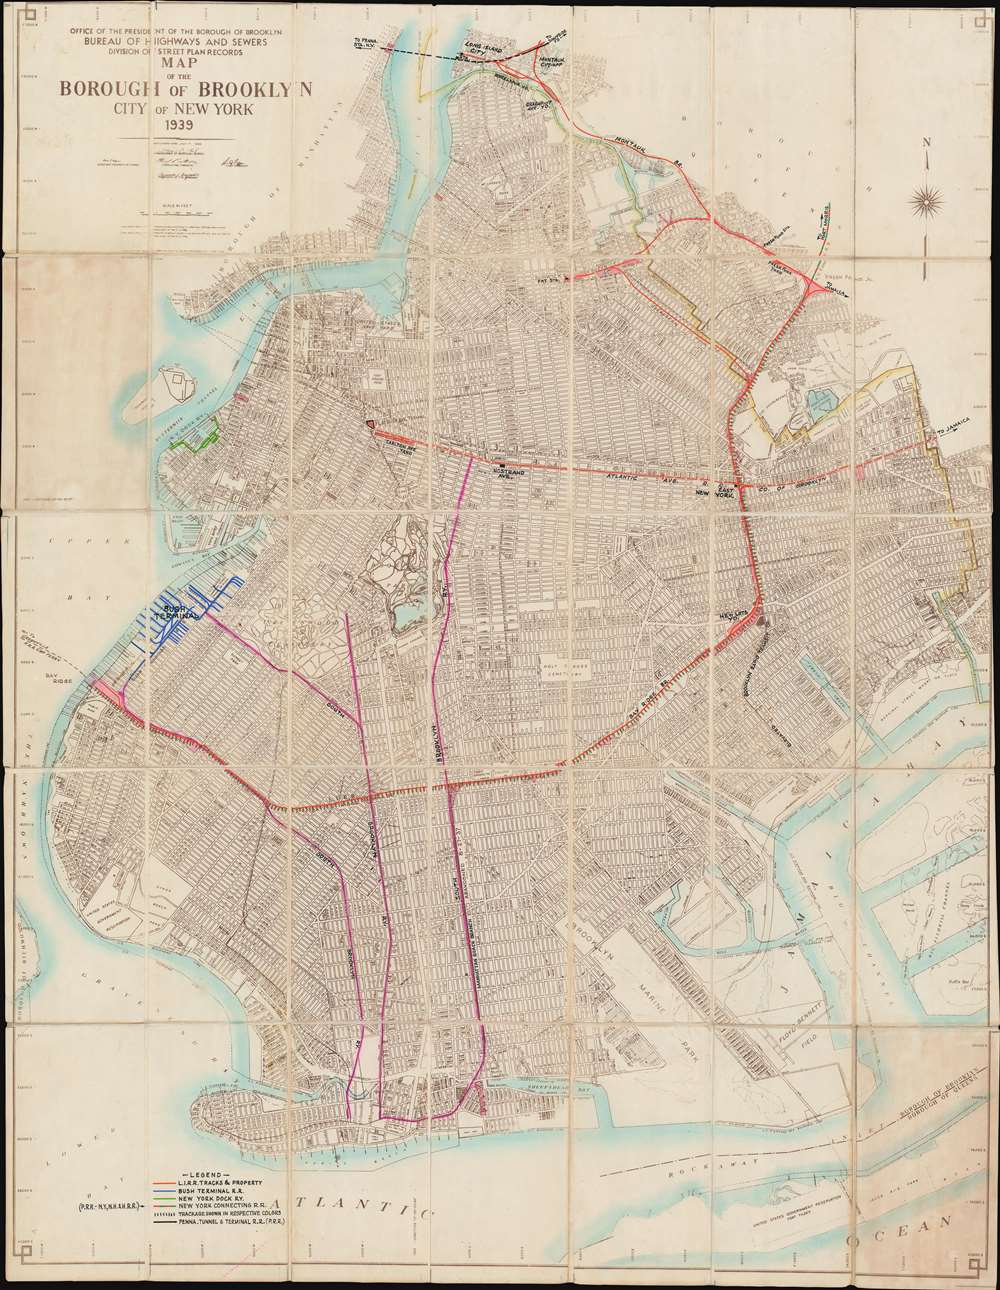 1939 Borough of Brooklyn City Map or Plan of Brooklyn w/ Manuscript Railroads